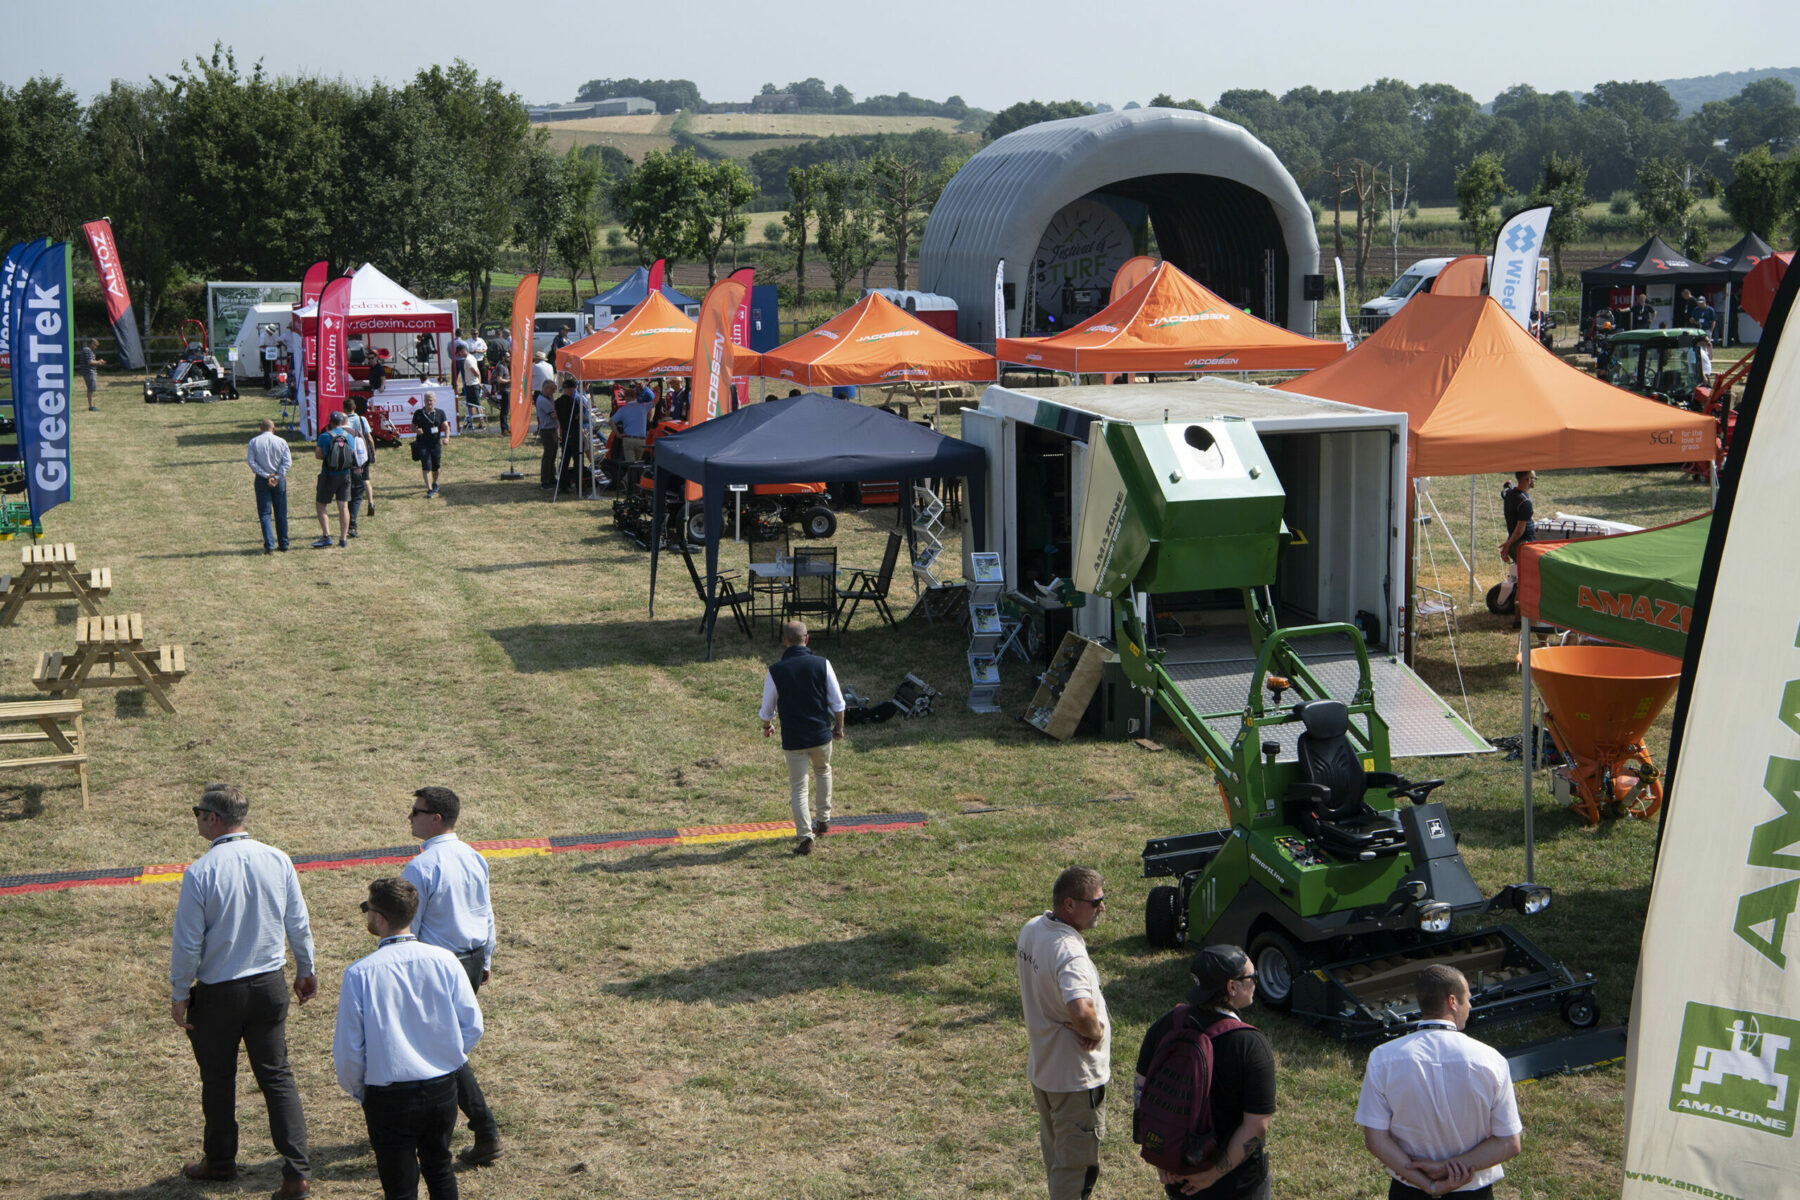 Festival of Turf was hosted at the Warwickshire Event Centre